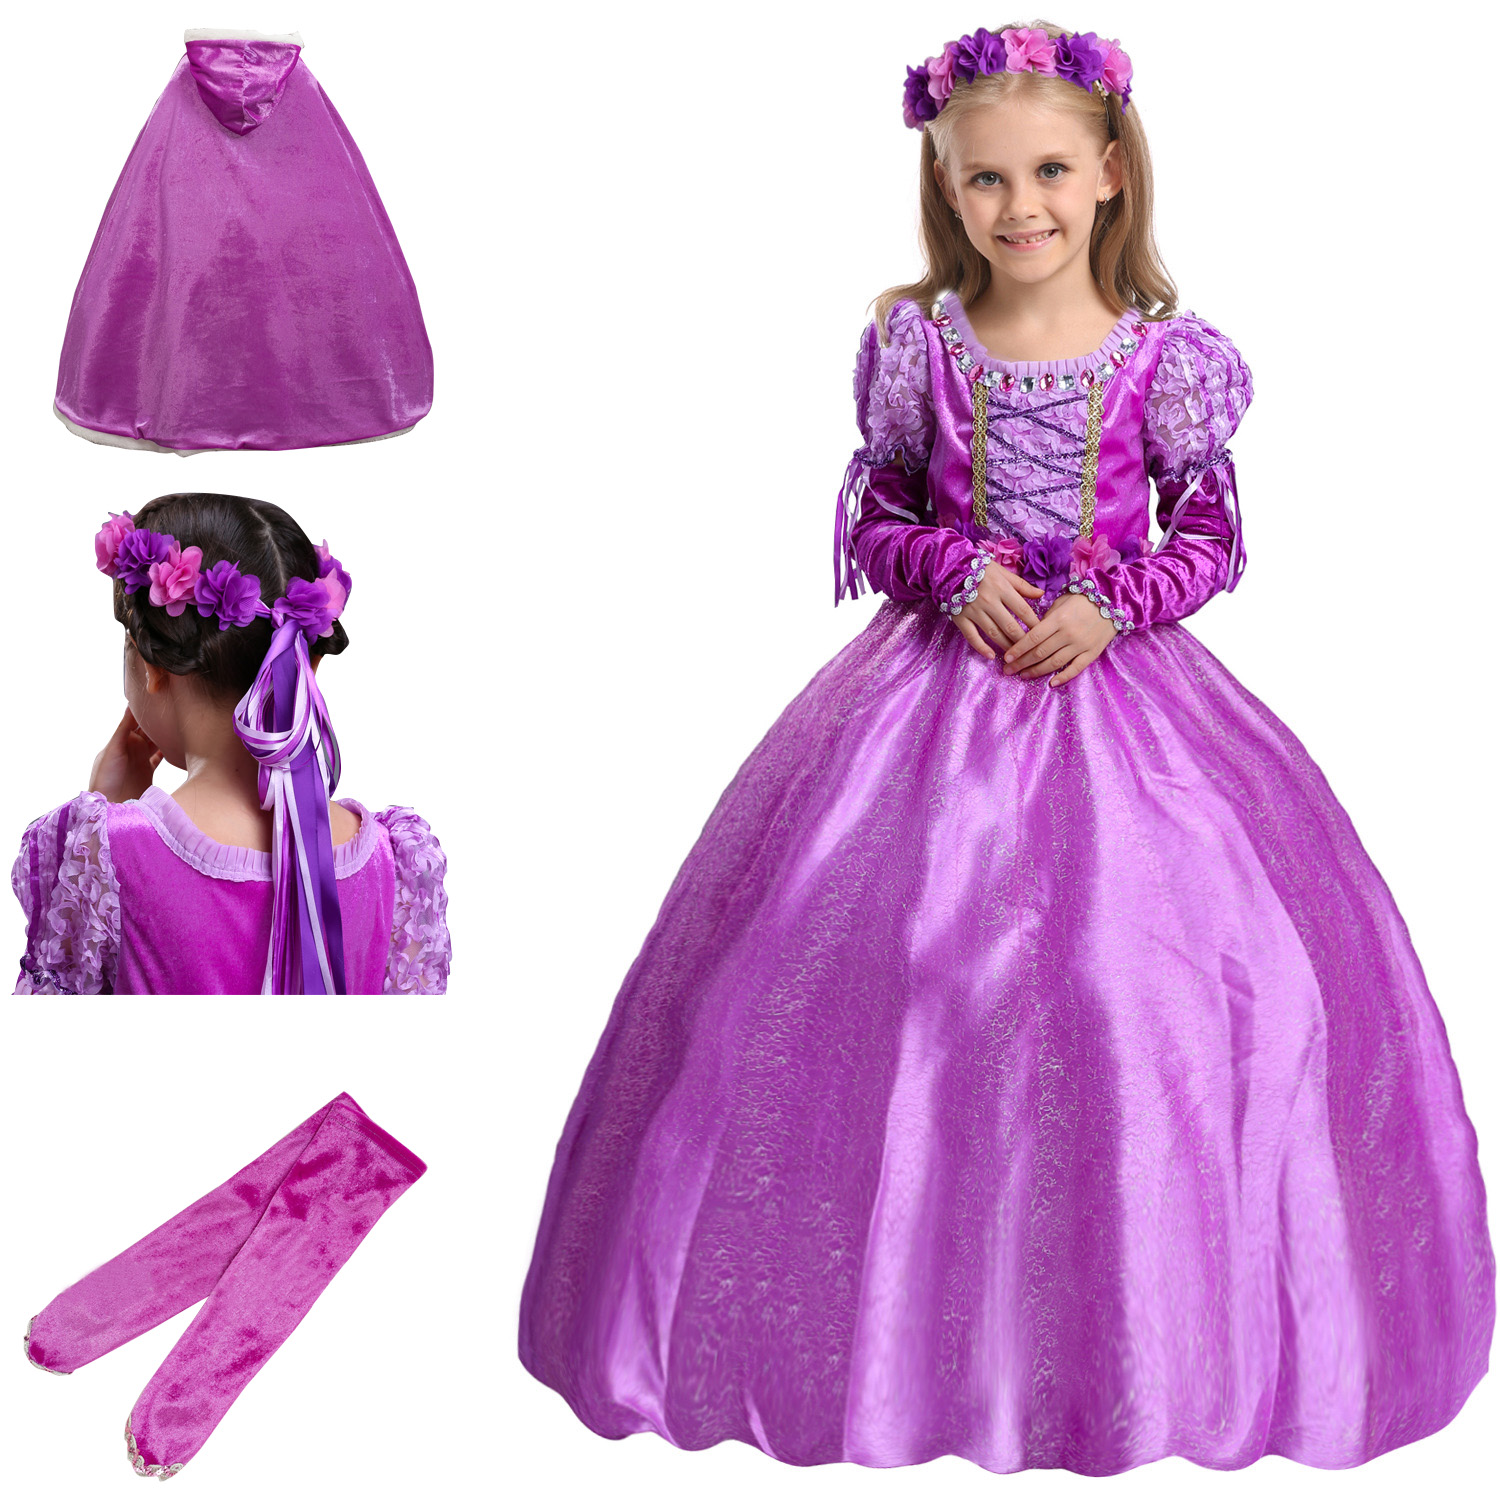 Halloween Kids Clothes Children's Costumes Cosplay Girls Birthday Party Dresses Sophia Princess Dress Up Outfits devil may cry 4 dante cosplay wig halloween party cosplay wigs free shipping